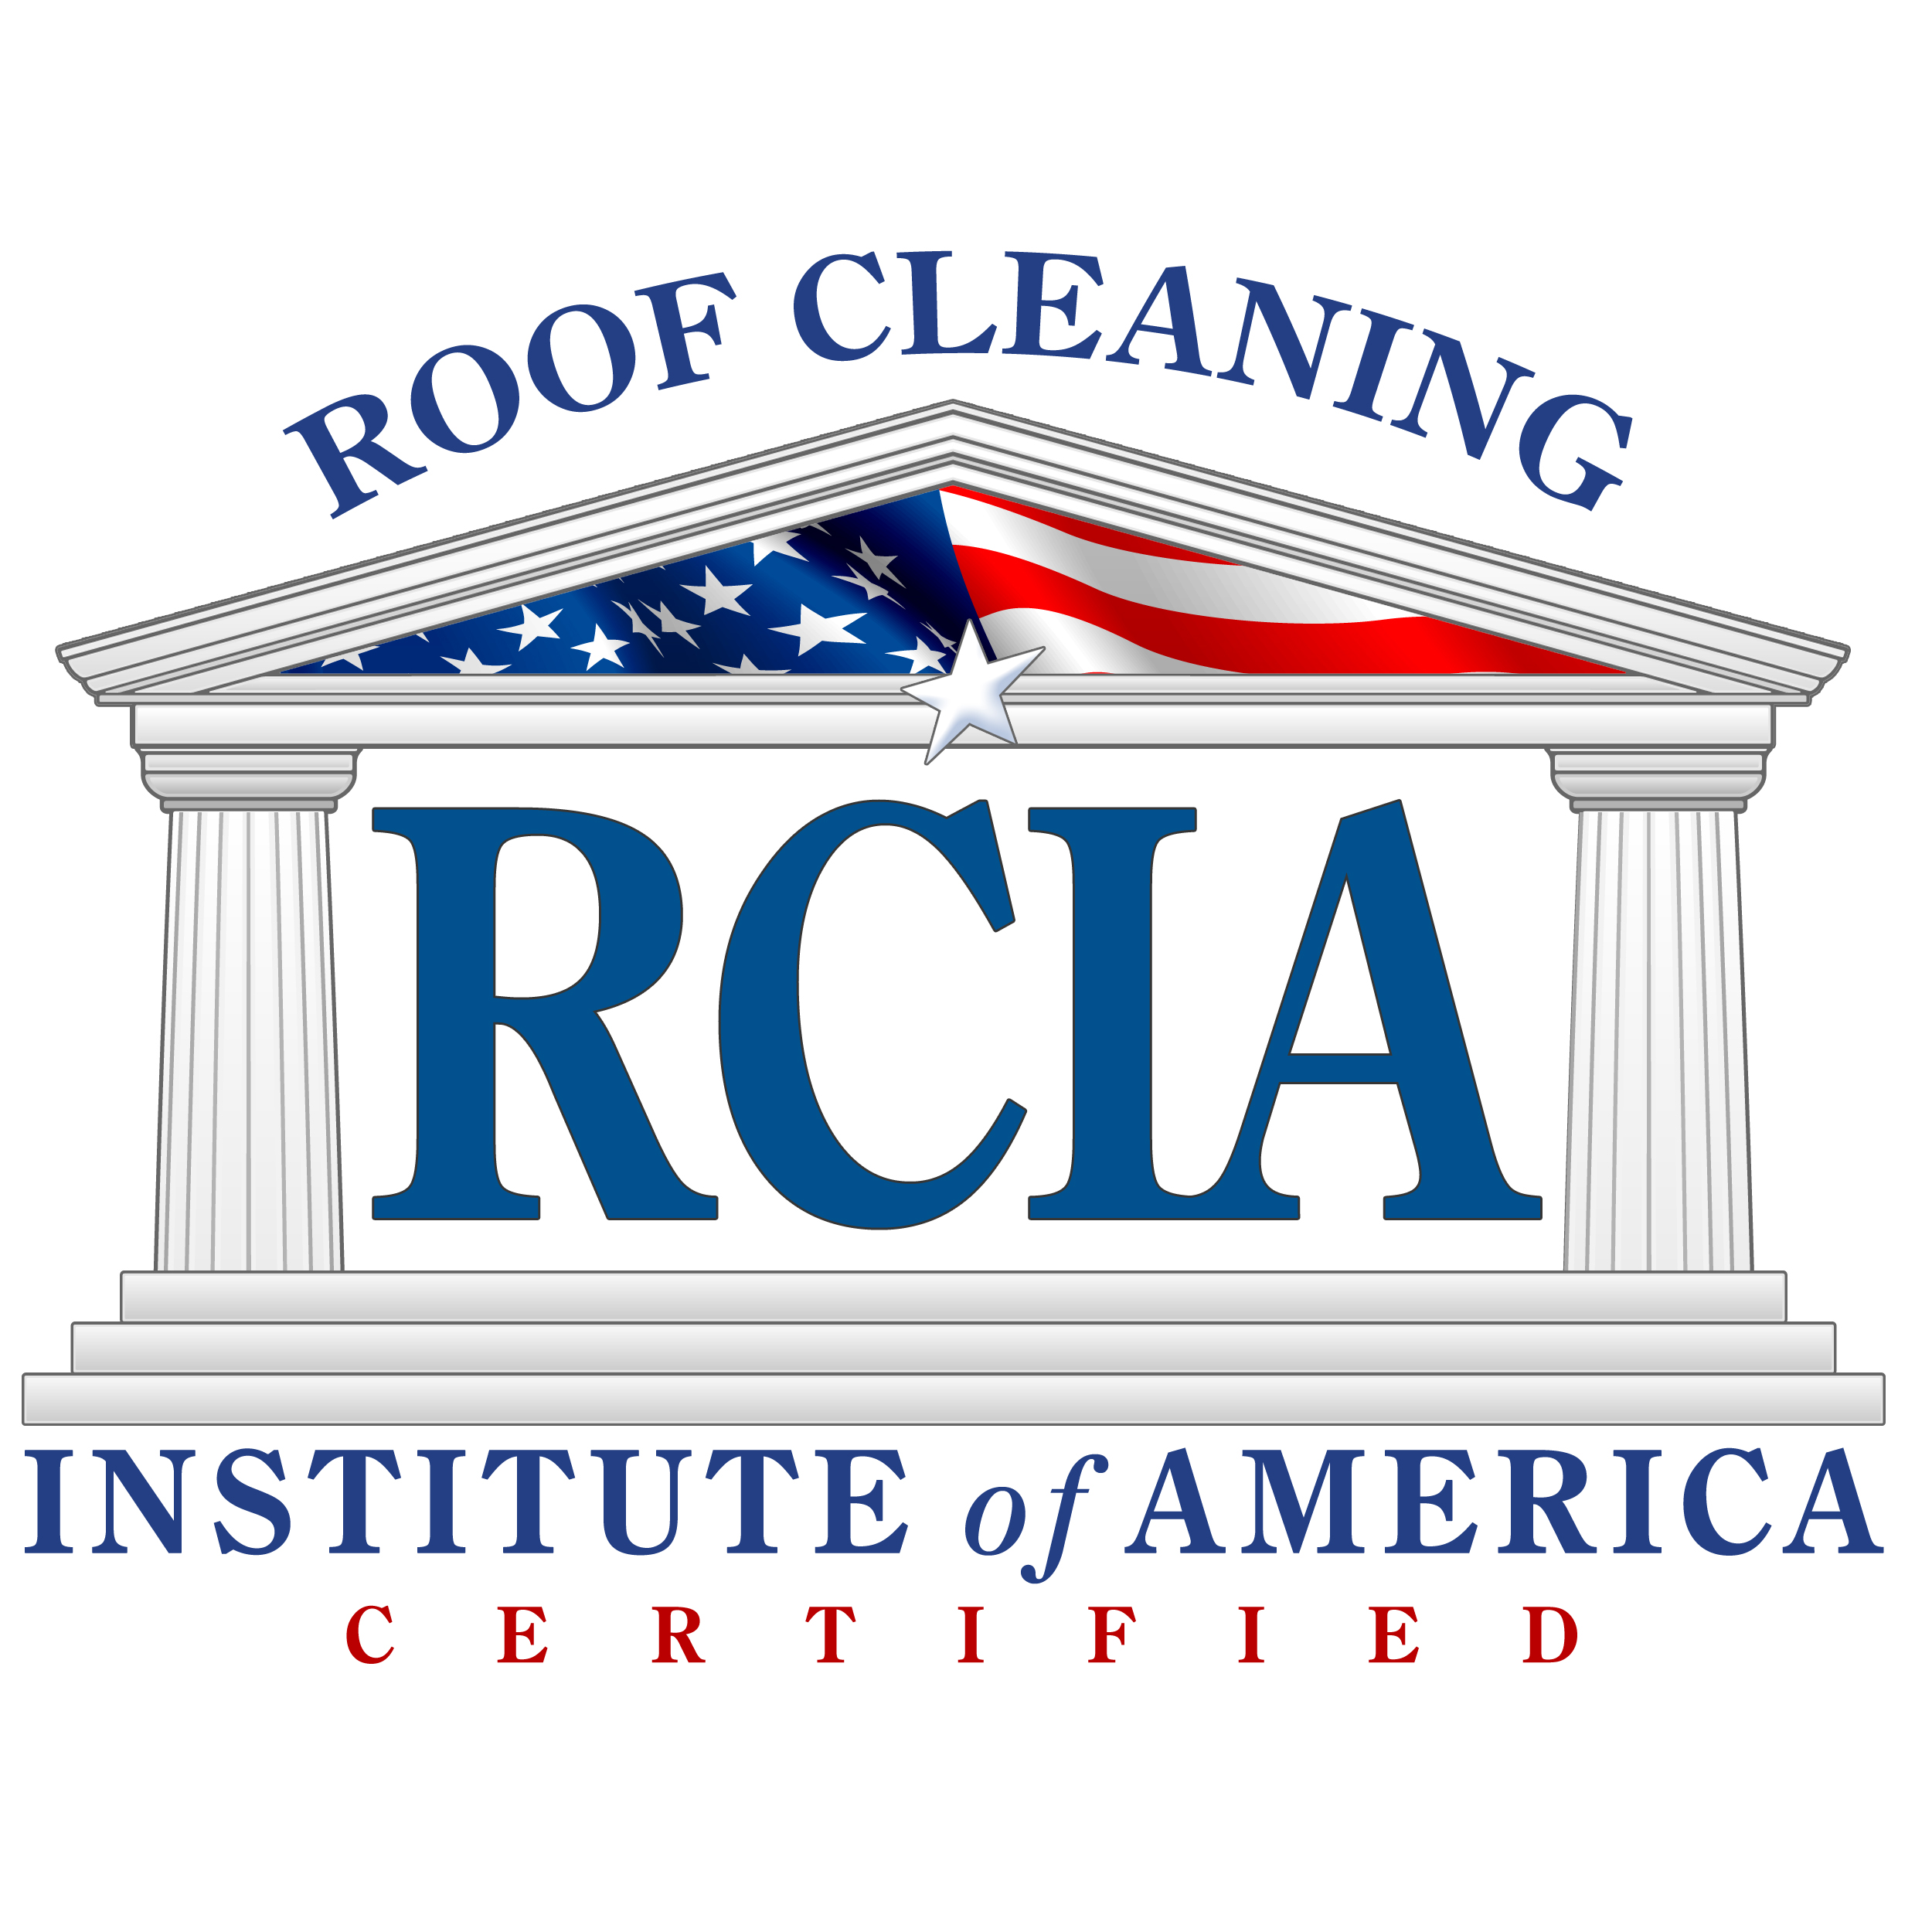 RCIA Certified Roof Cleaning Logo